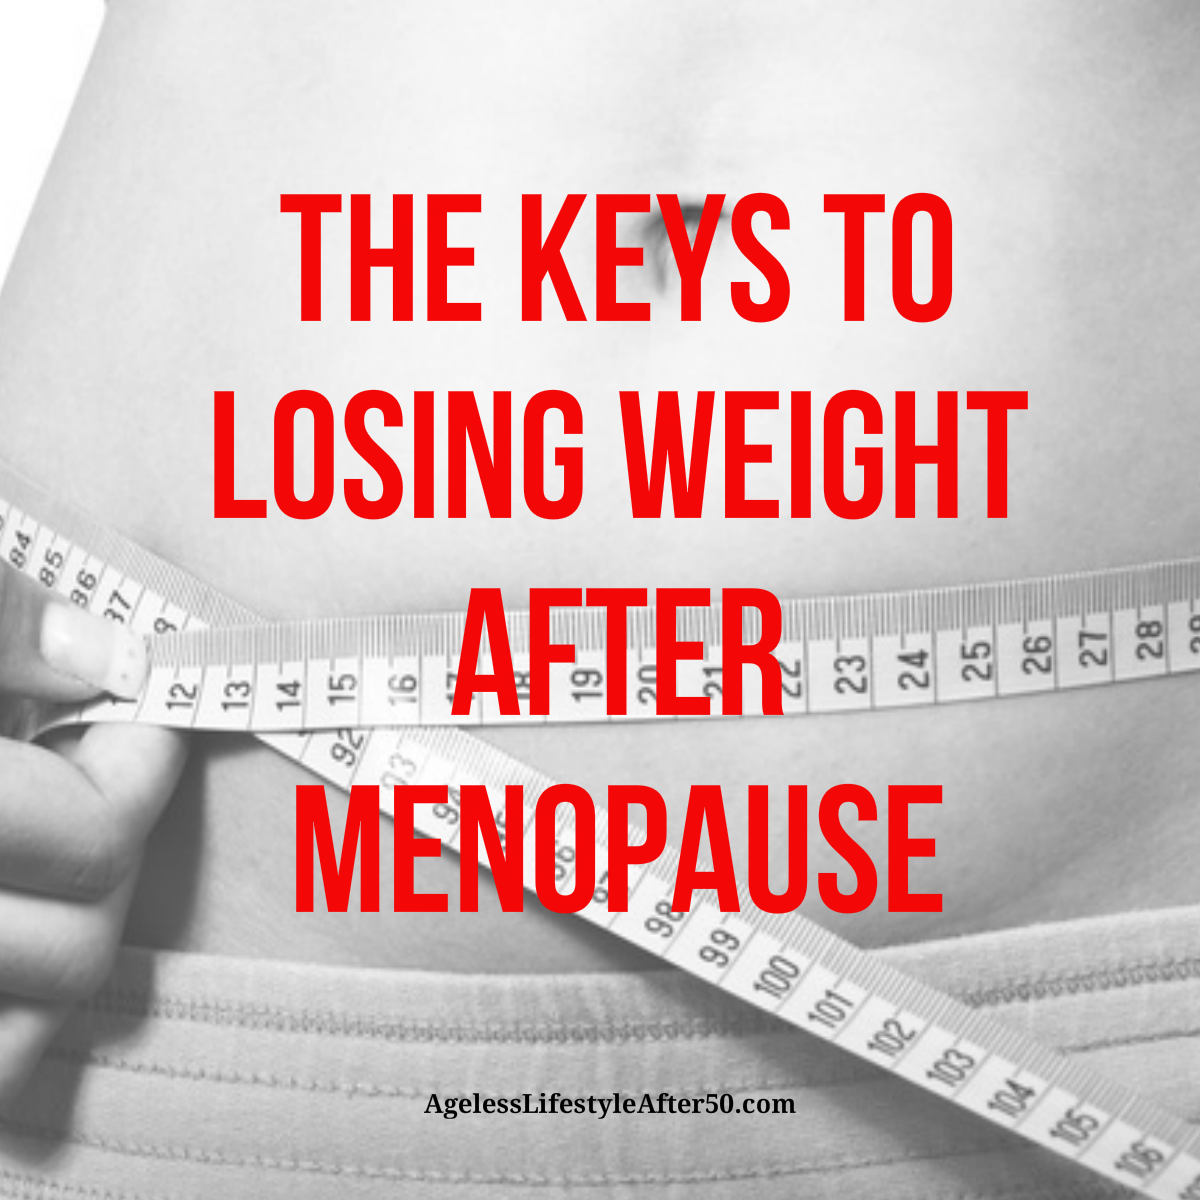 Menopause: do not lose weight 91